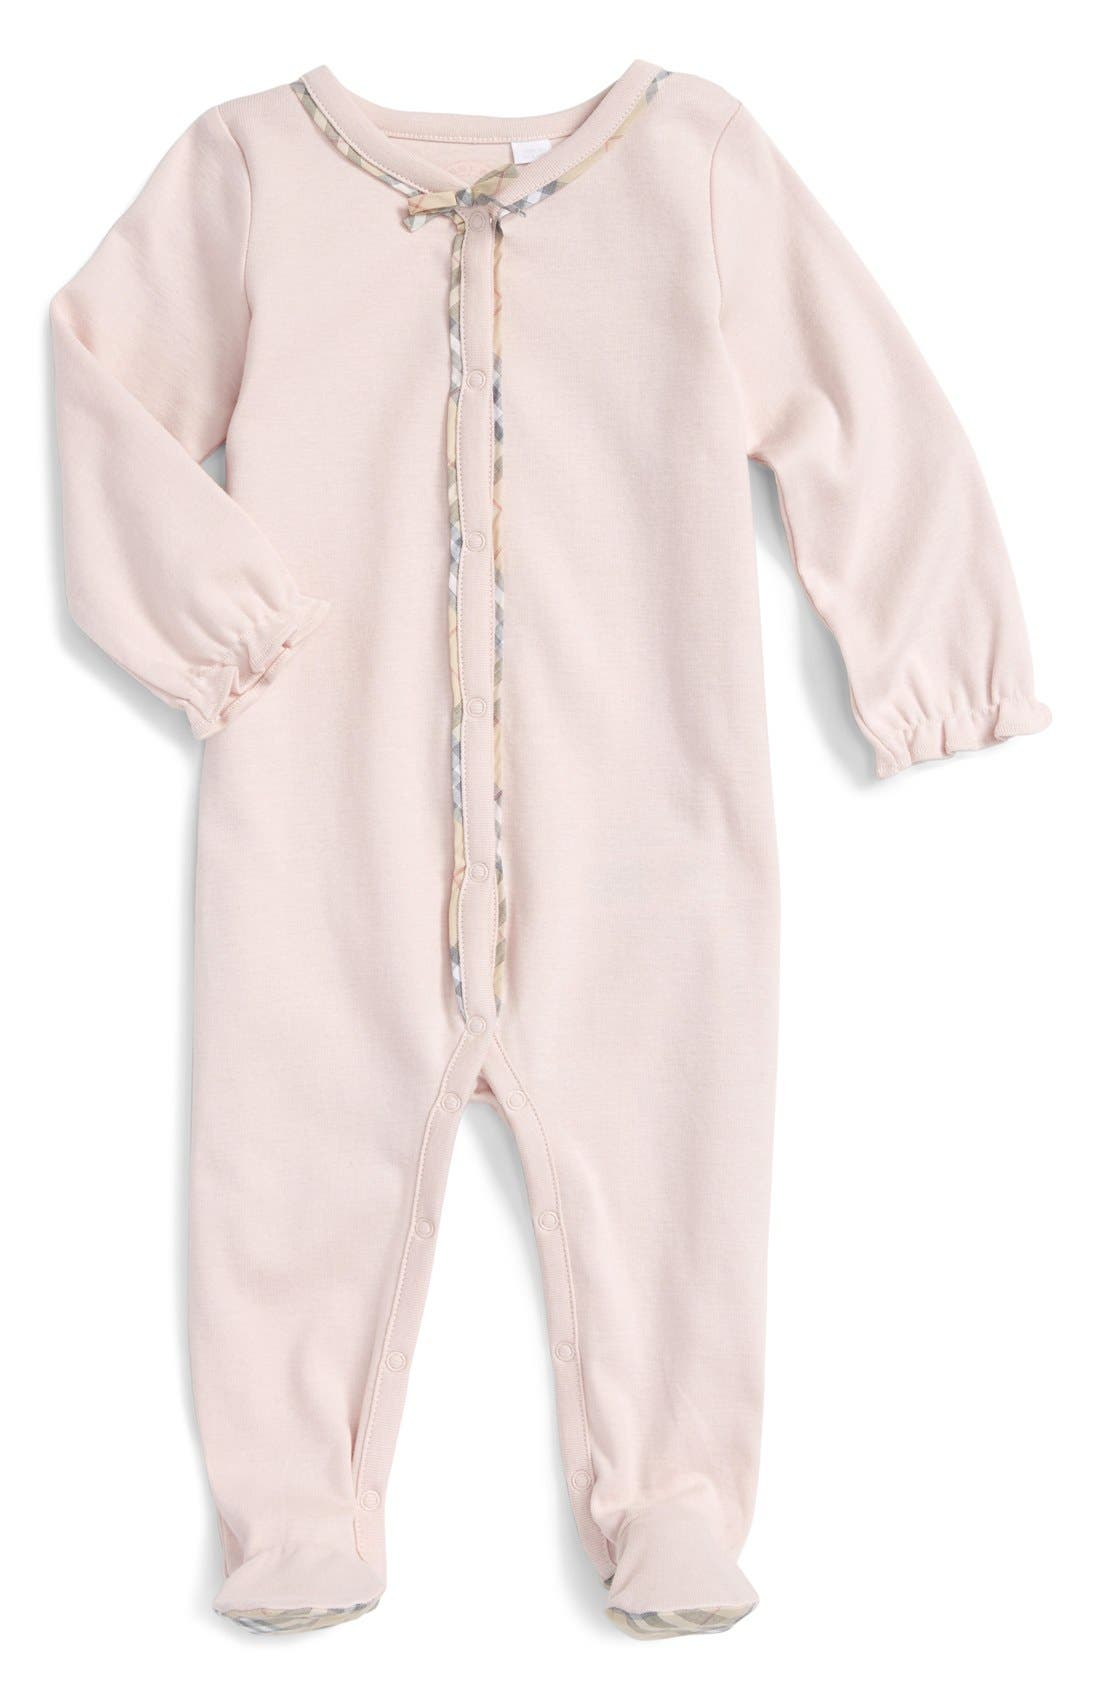 Burberry 'Jacey' Cotton Footie (Baby Girls)